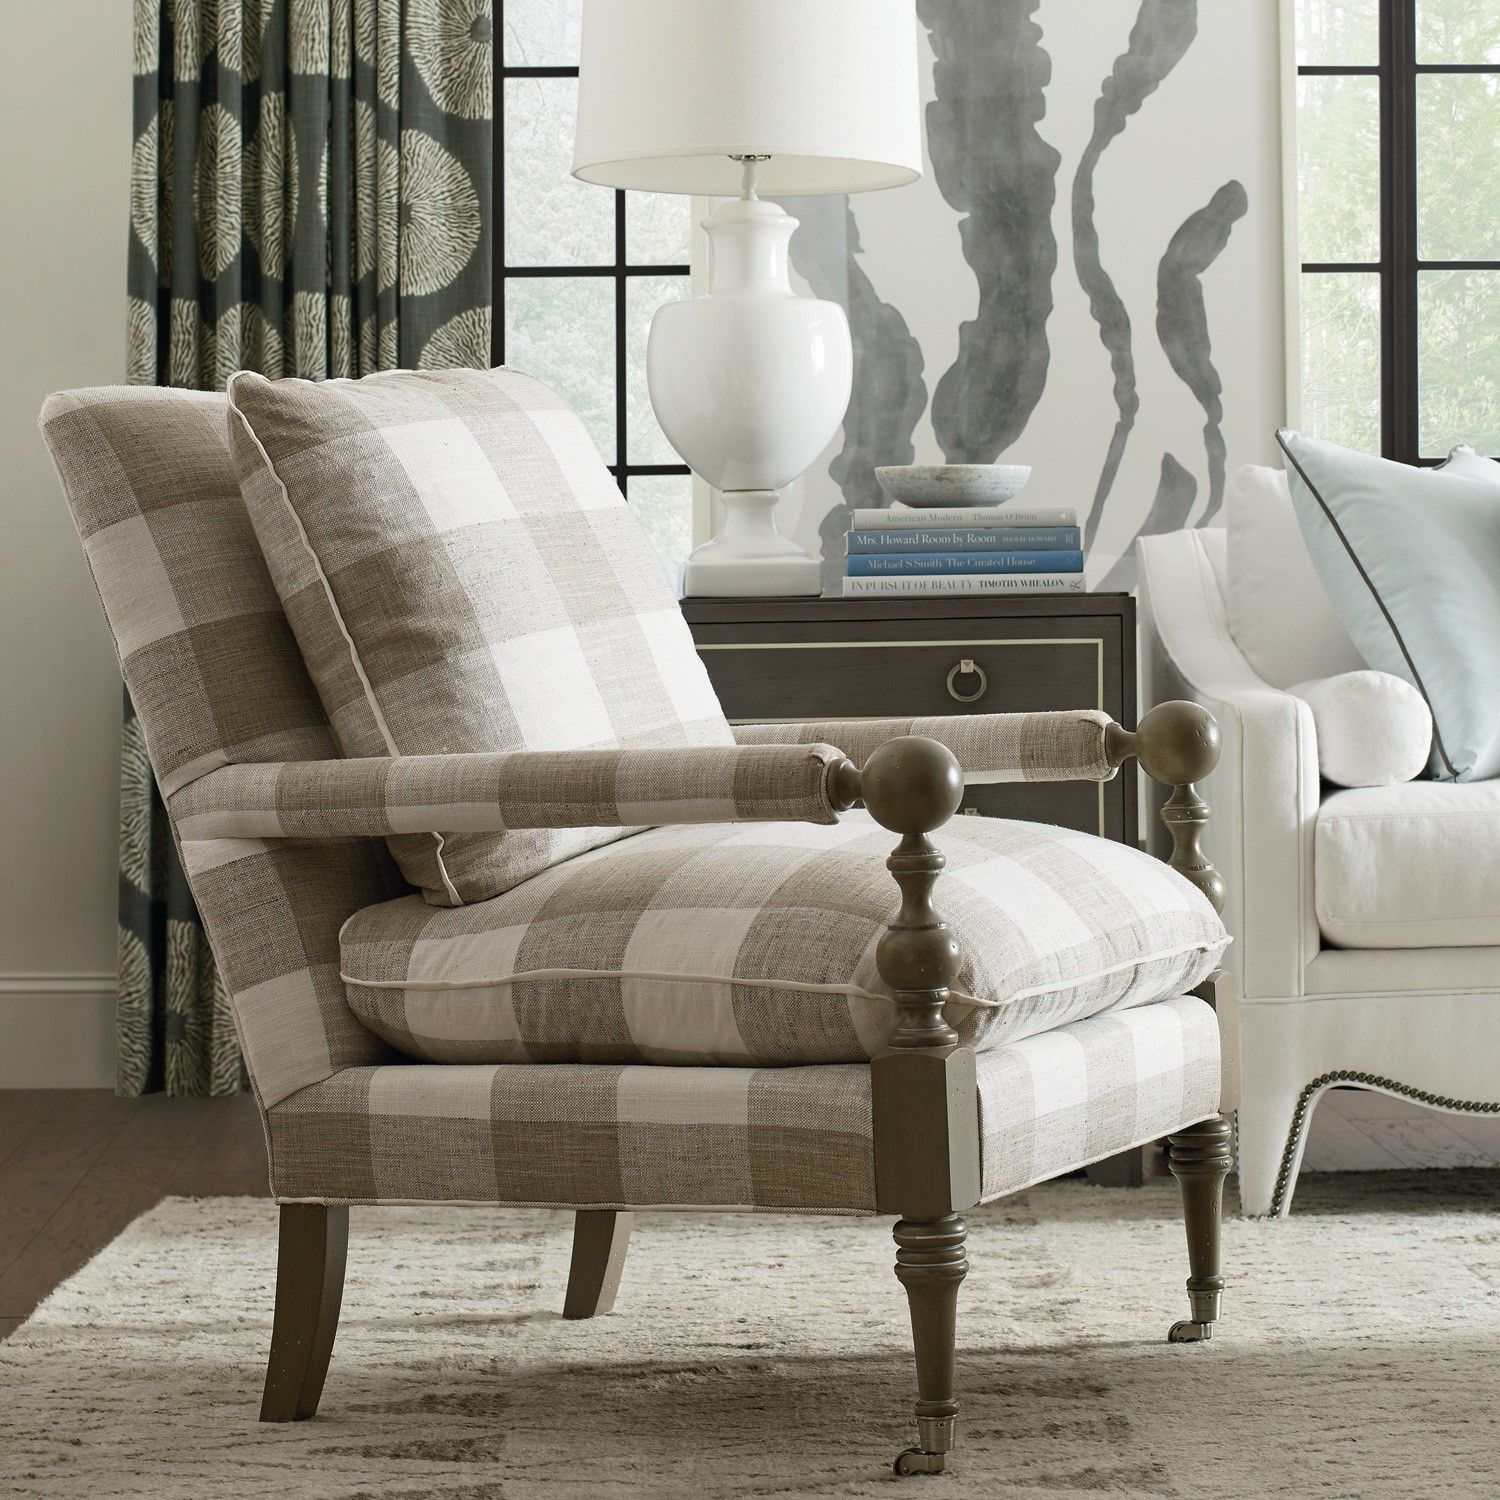 Bradstreet Chair Furniture, Hickory furniture, Cr laine